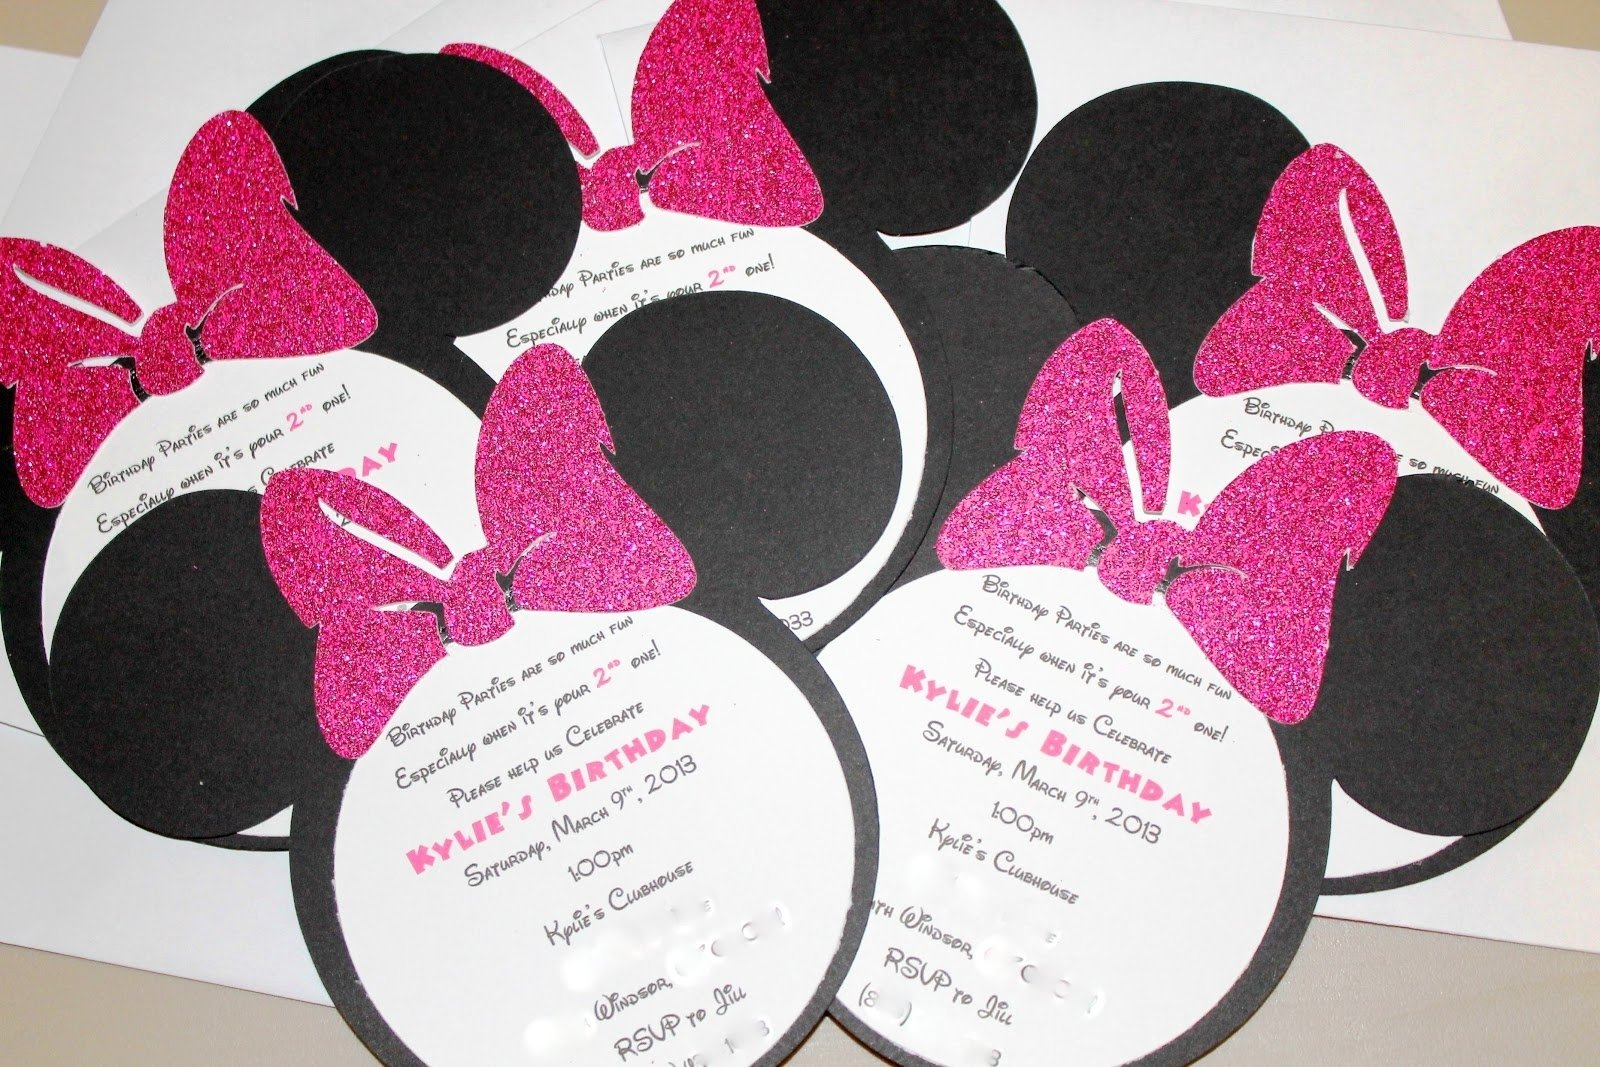 10 Elegant Minnie Mouse Birthday Party Ideas For A 2 Year Old minnie mouse 2nd birthday party 4 2020